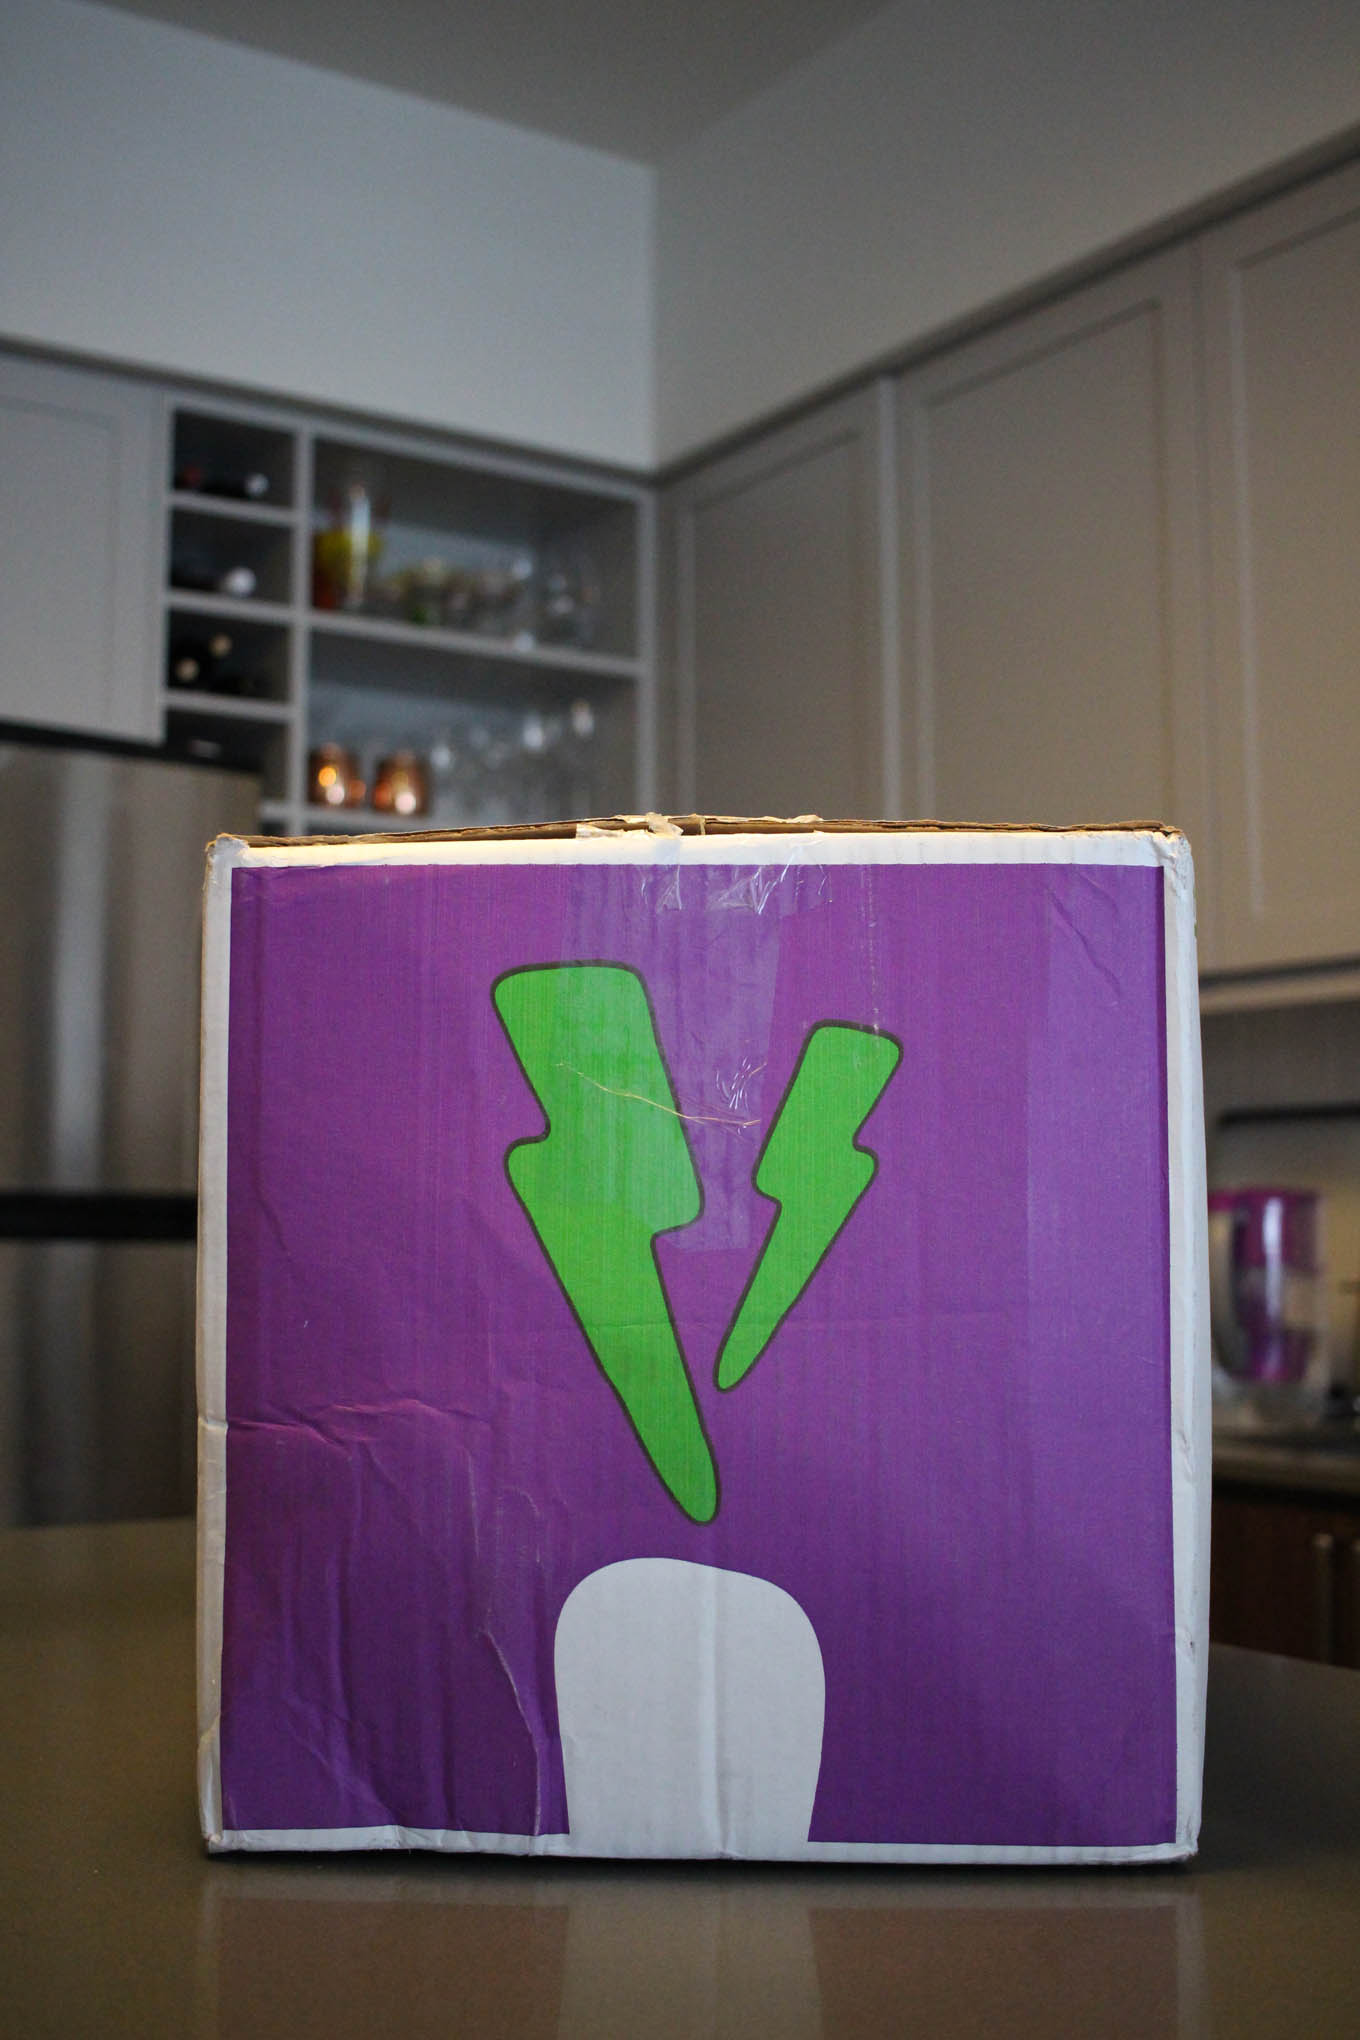 Lifestyle blogger Roxanne of Glass of Glam's review of the Purple Carrot box